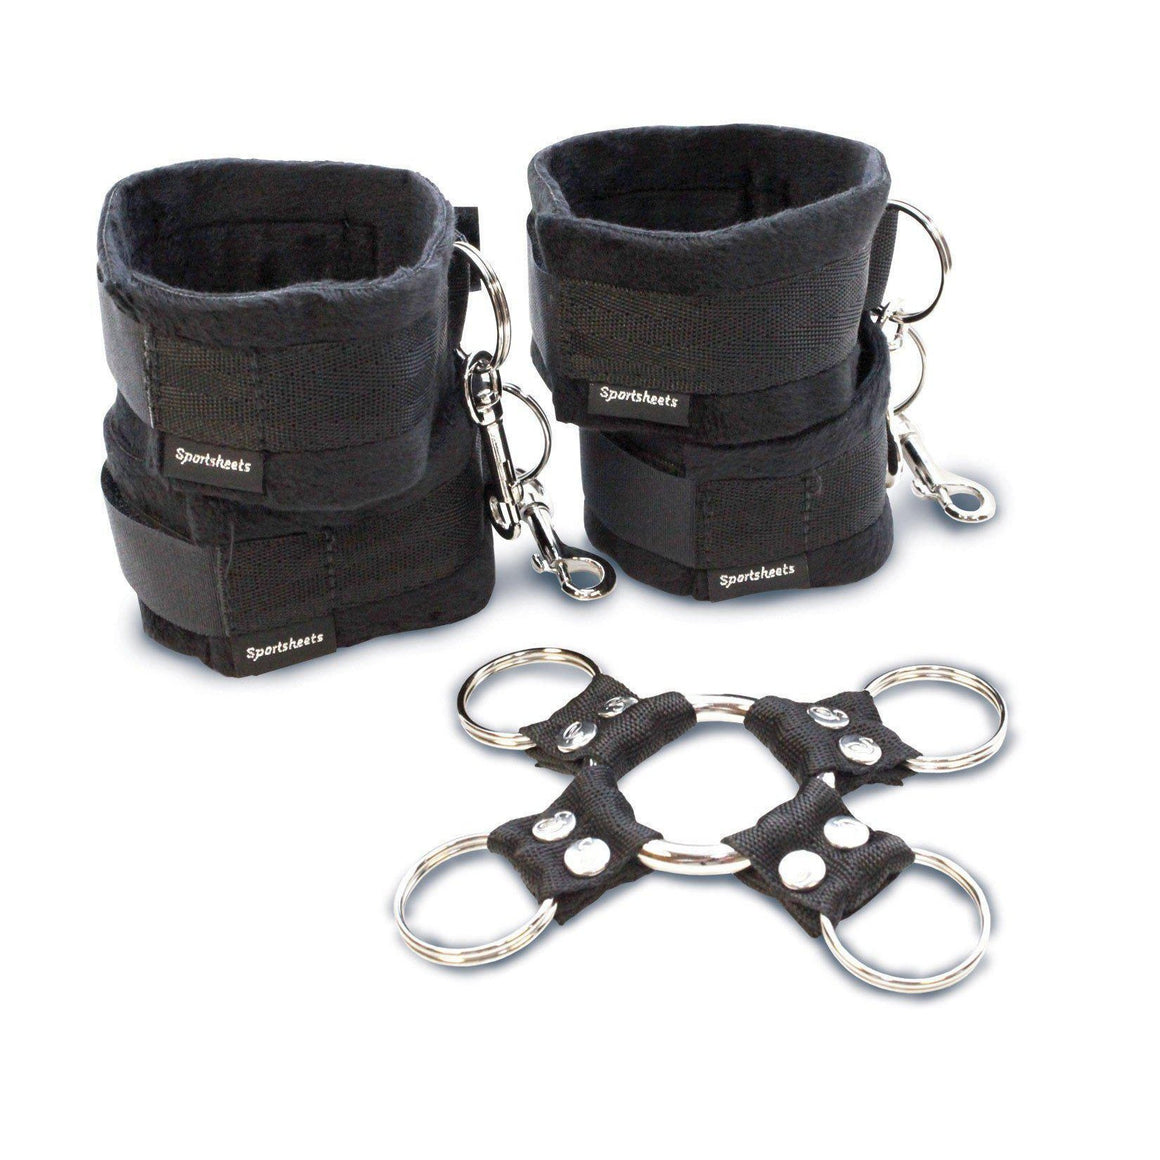 5 Piece Hog Tie & Cuff Set - Couples Playthings